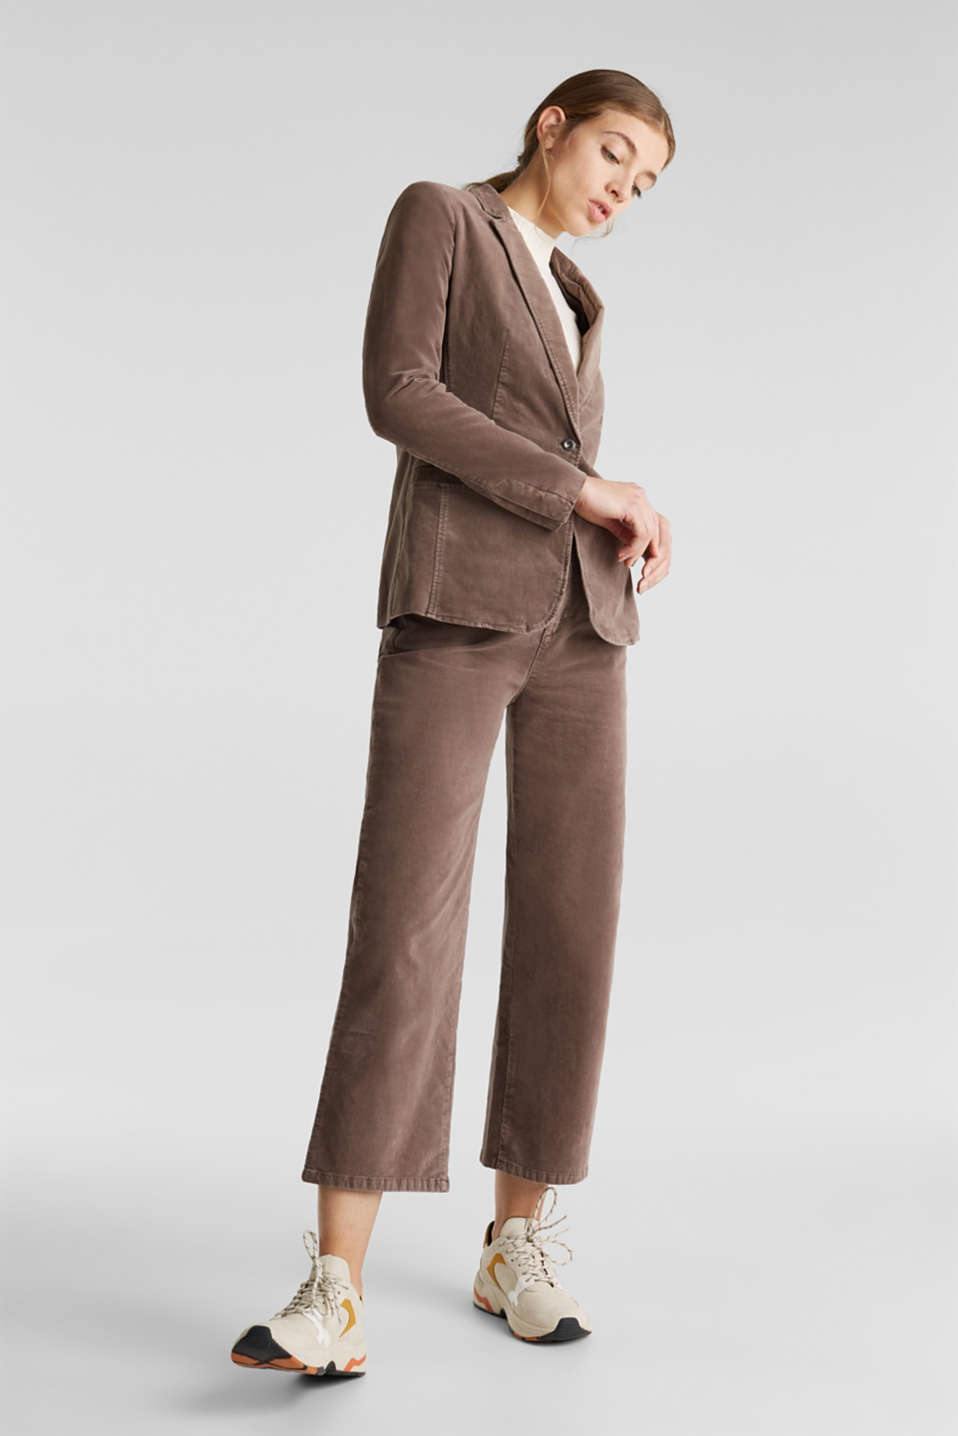 Velvet blazer with stretch for comfort, LIGHT TAUPE, detail image number 1